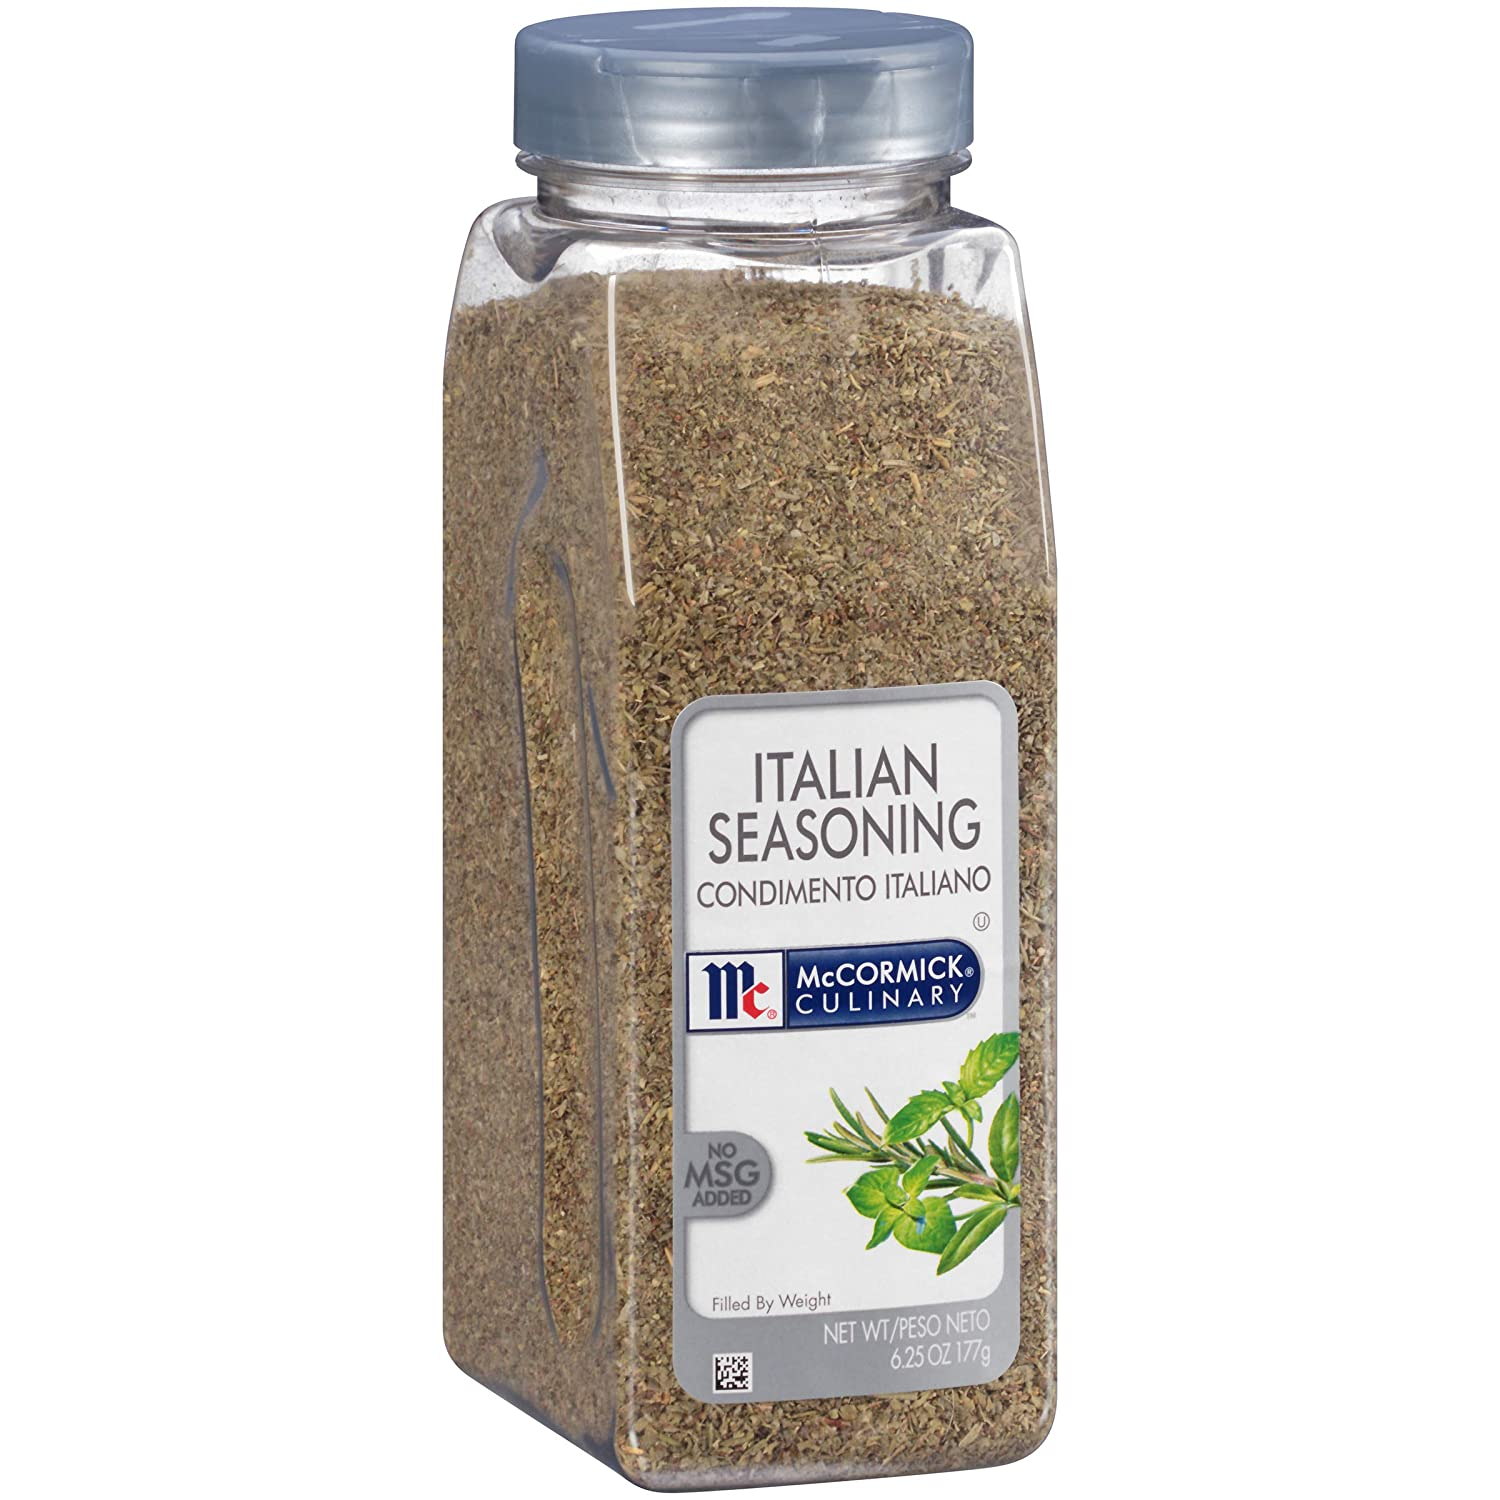 McCormick Quantity limited Culinary Italian 6.25 oz Limited time sale Seasoning